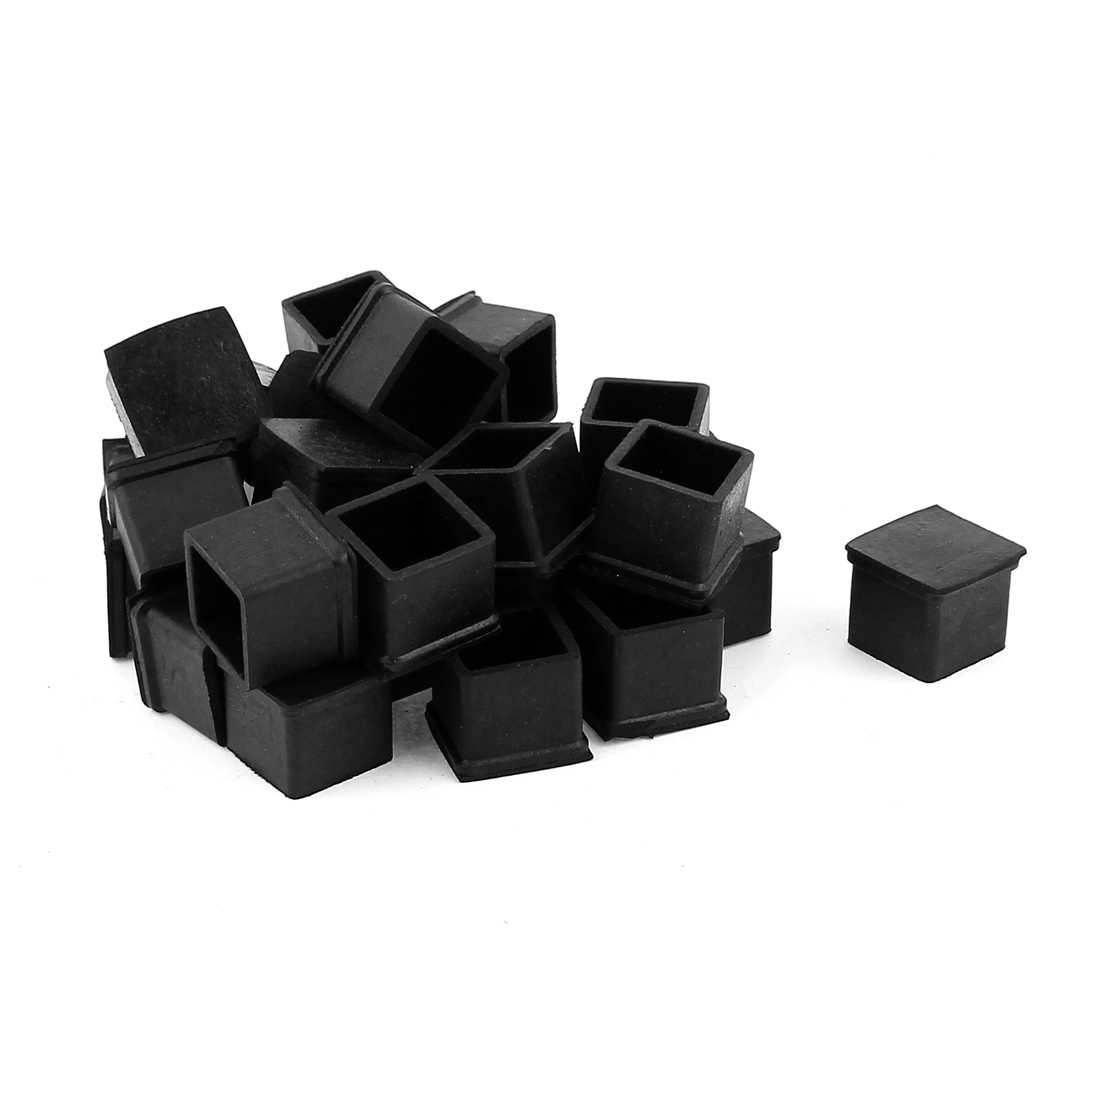 30 Pcs Square Rubber Furniture Table Foot Leg Cover Pad Floor Protector 20mm x 20mm